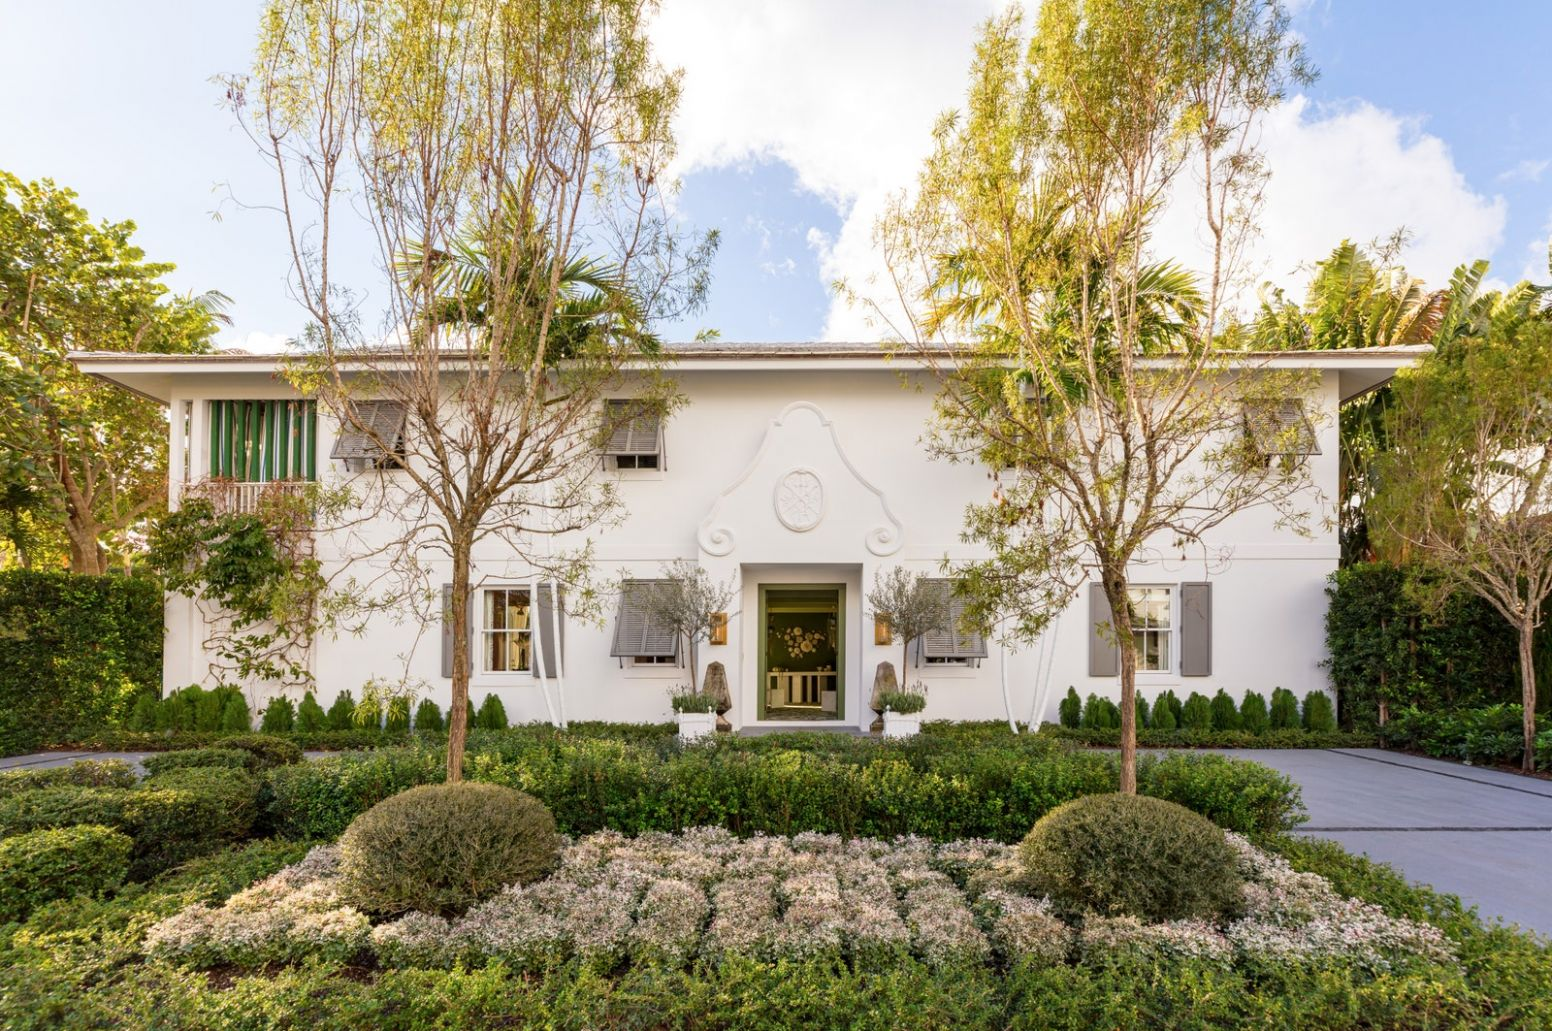 Tour the Kips Bay Show House Palm Beach | Architectural Digest - inspiration house in wpb